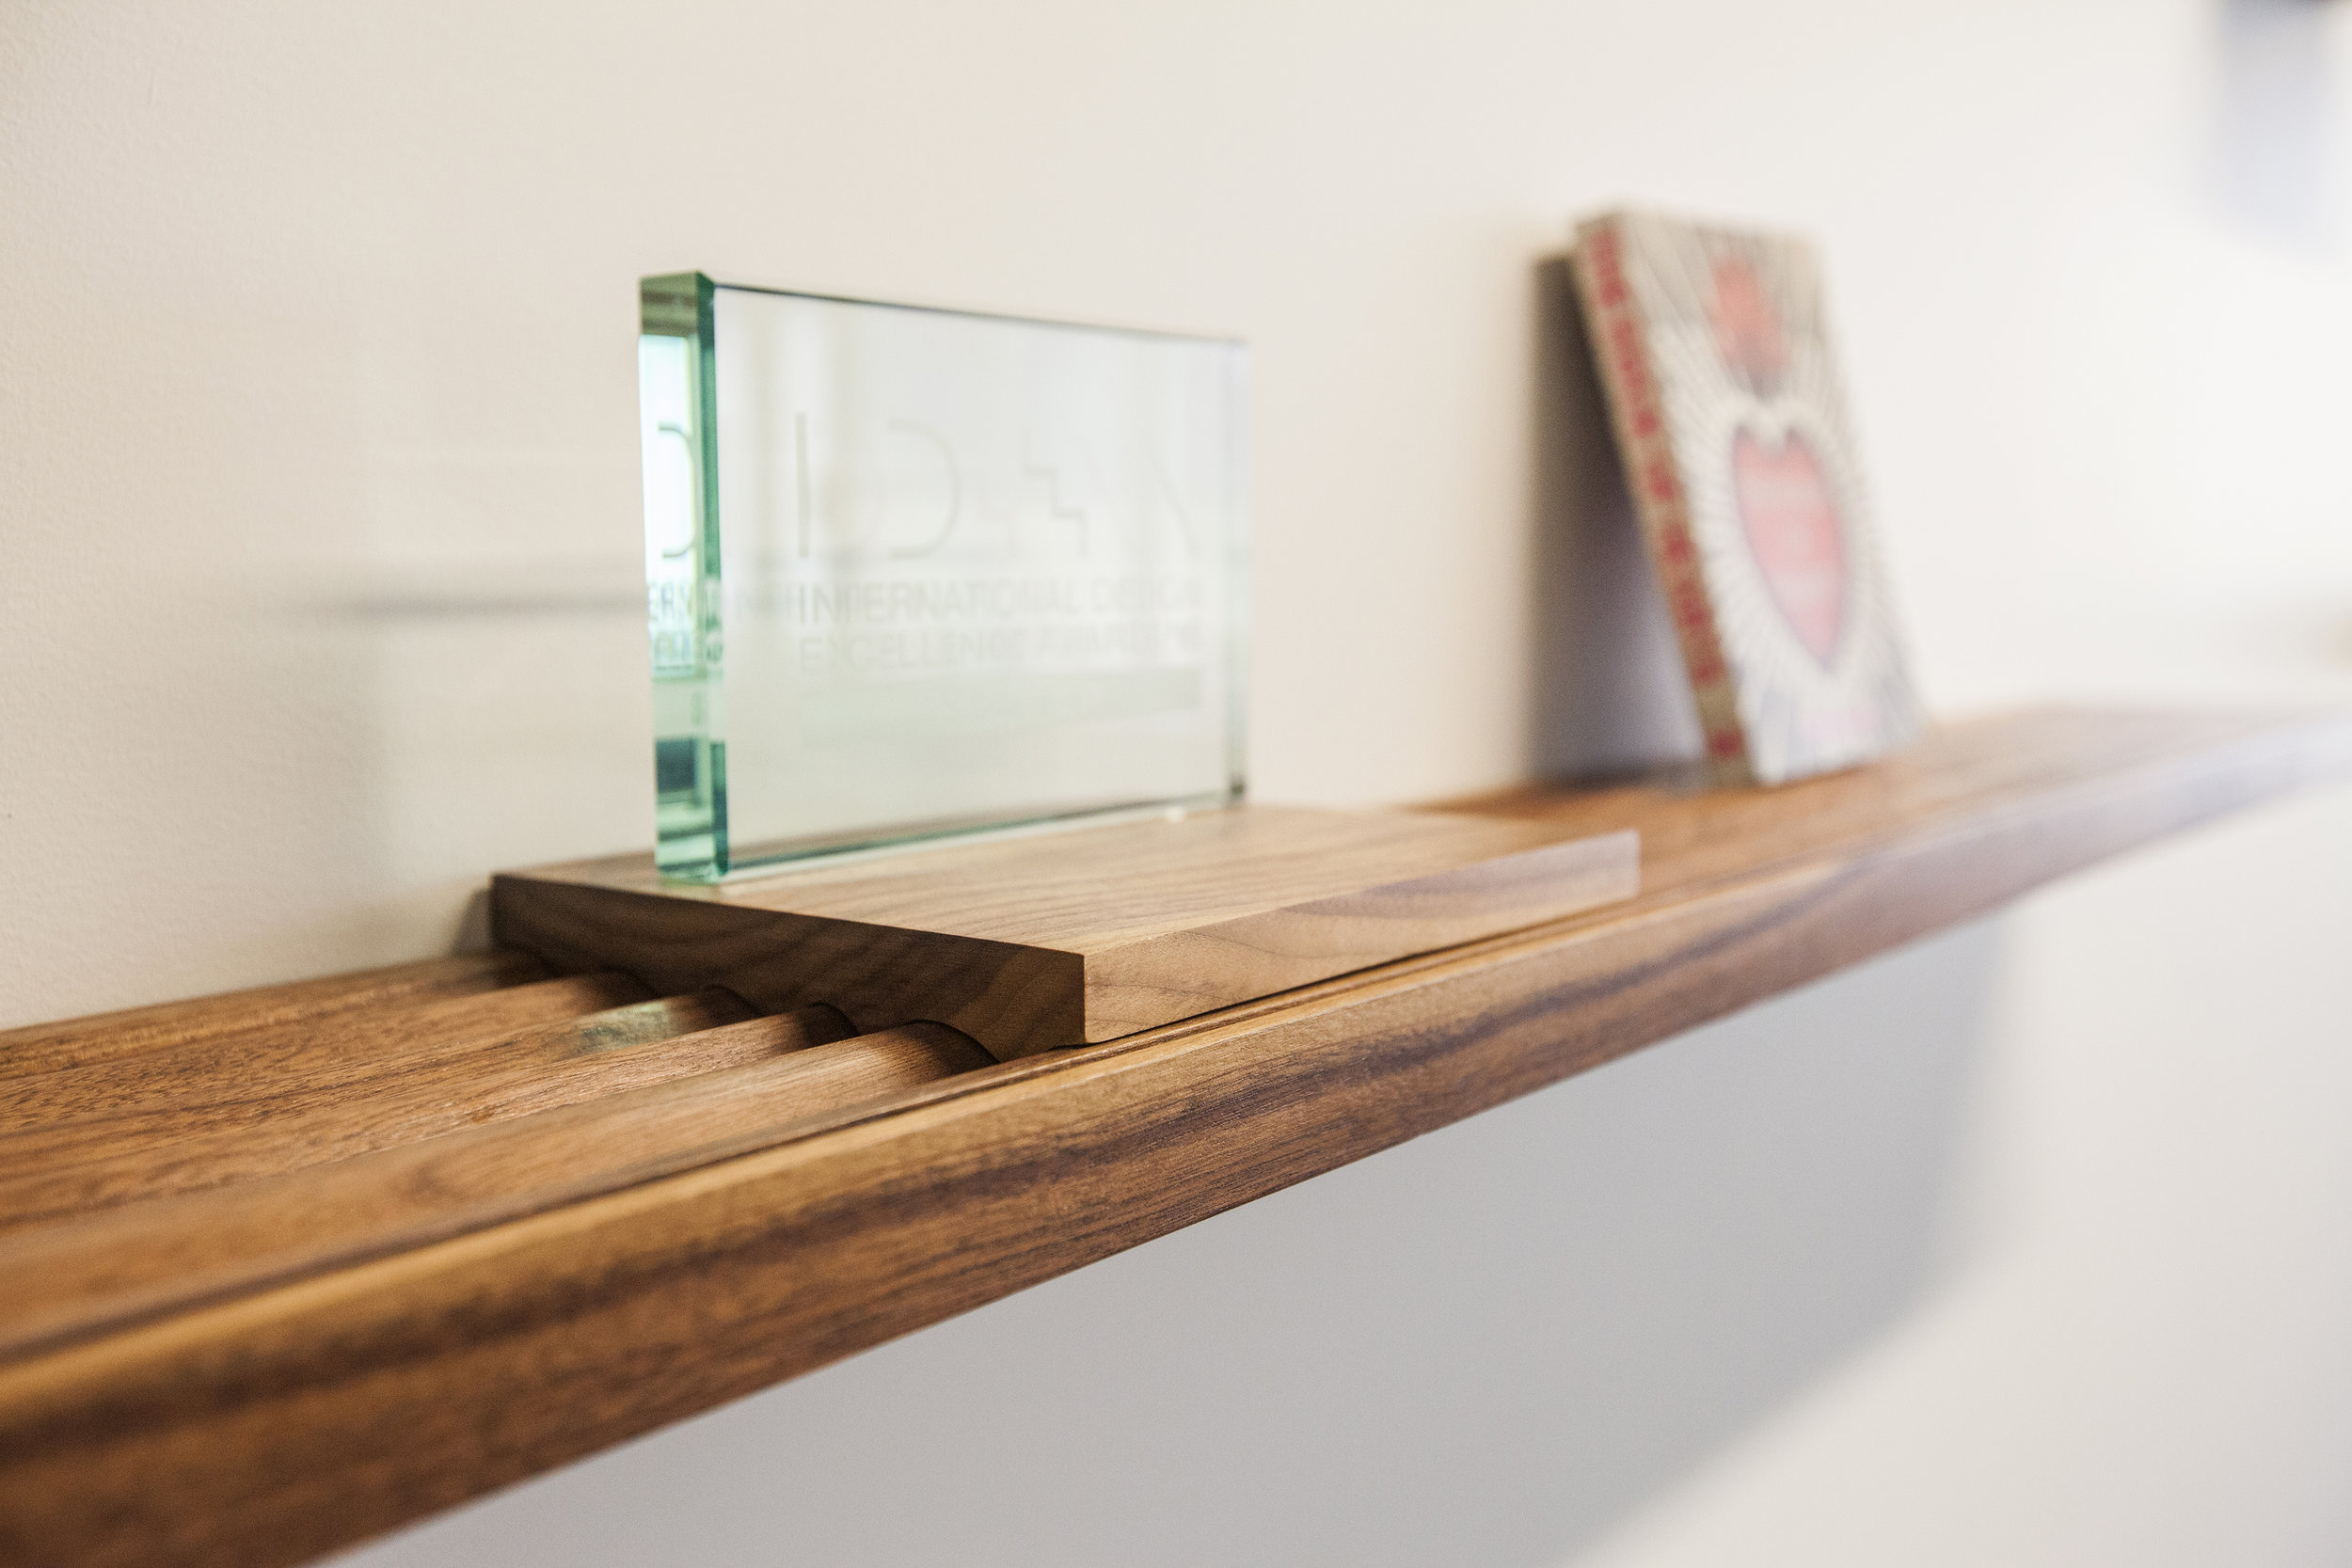 The grooves in the shelves allow for leaning different sizes of books, magazines and other printed materials. These small blocks carved with the same relief pattern sit on top the grooves and allow for awards and other items that need a flat surface.